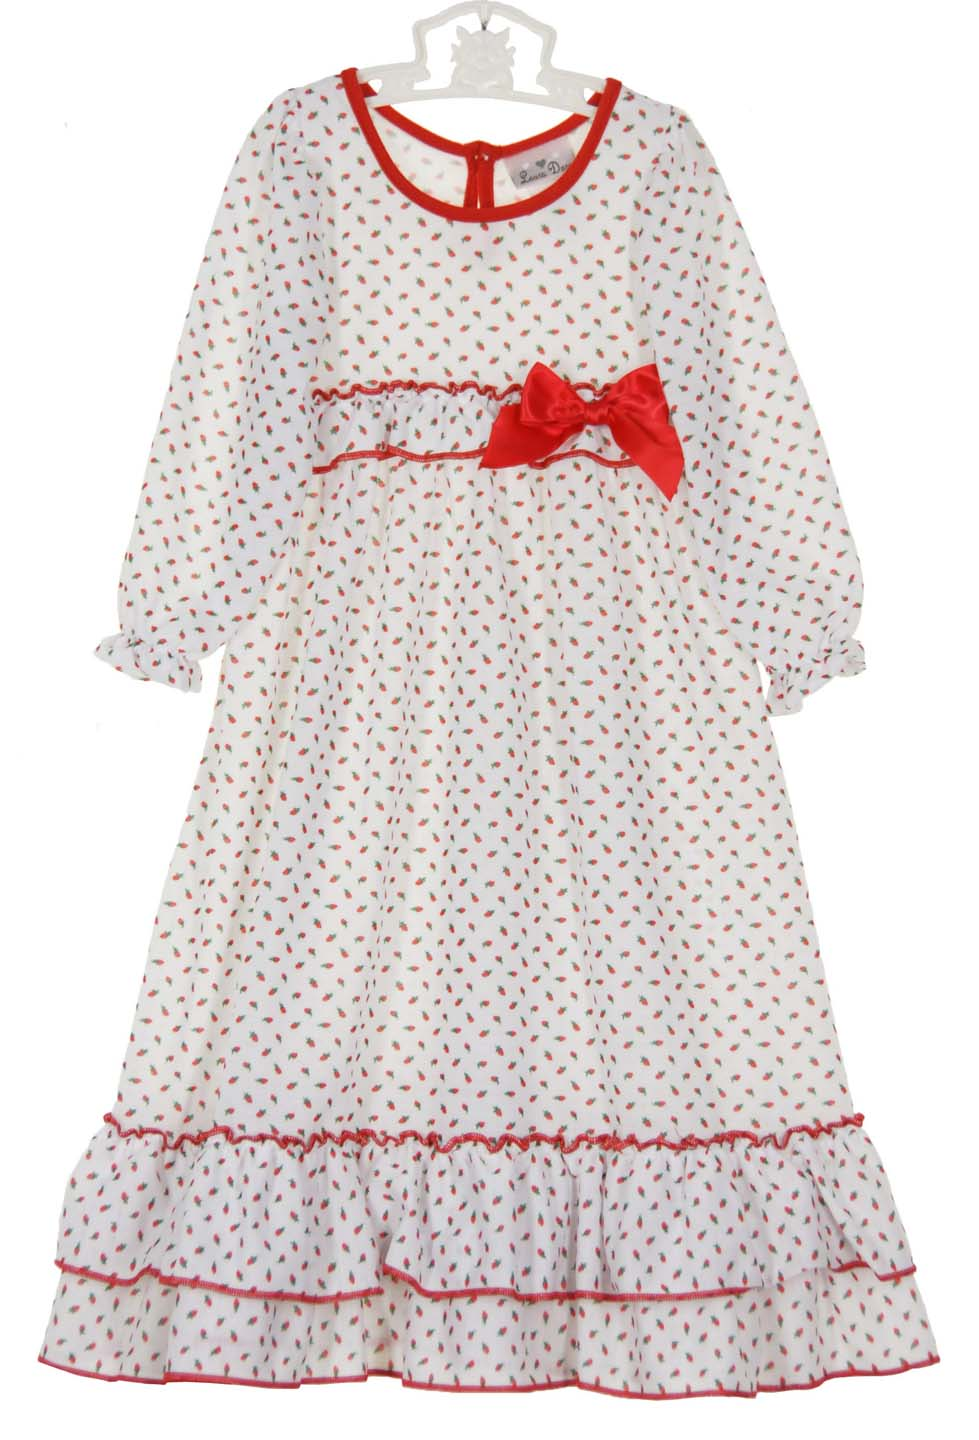 Red Rosebud Print Nightgown for Babies, Toddlers, and Girls